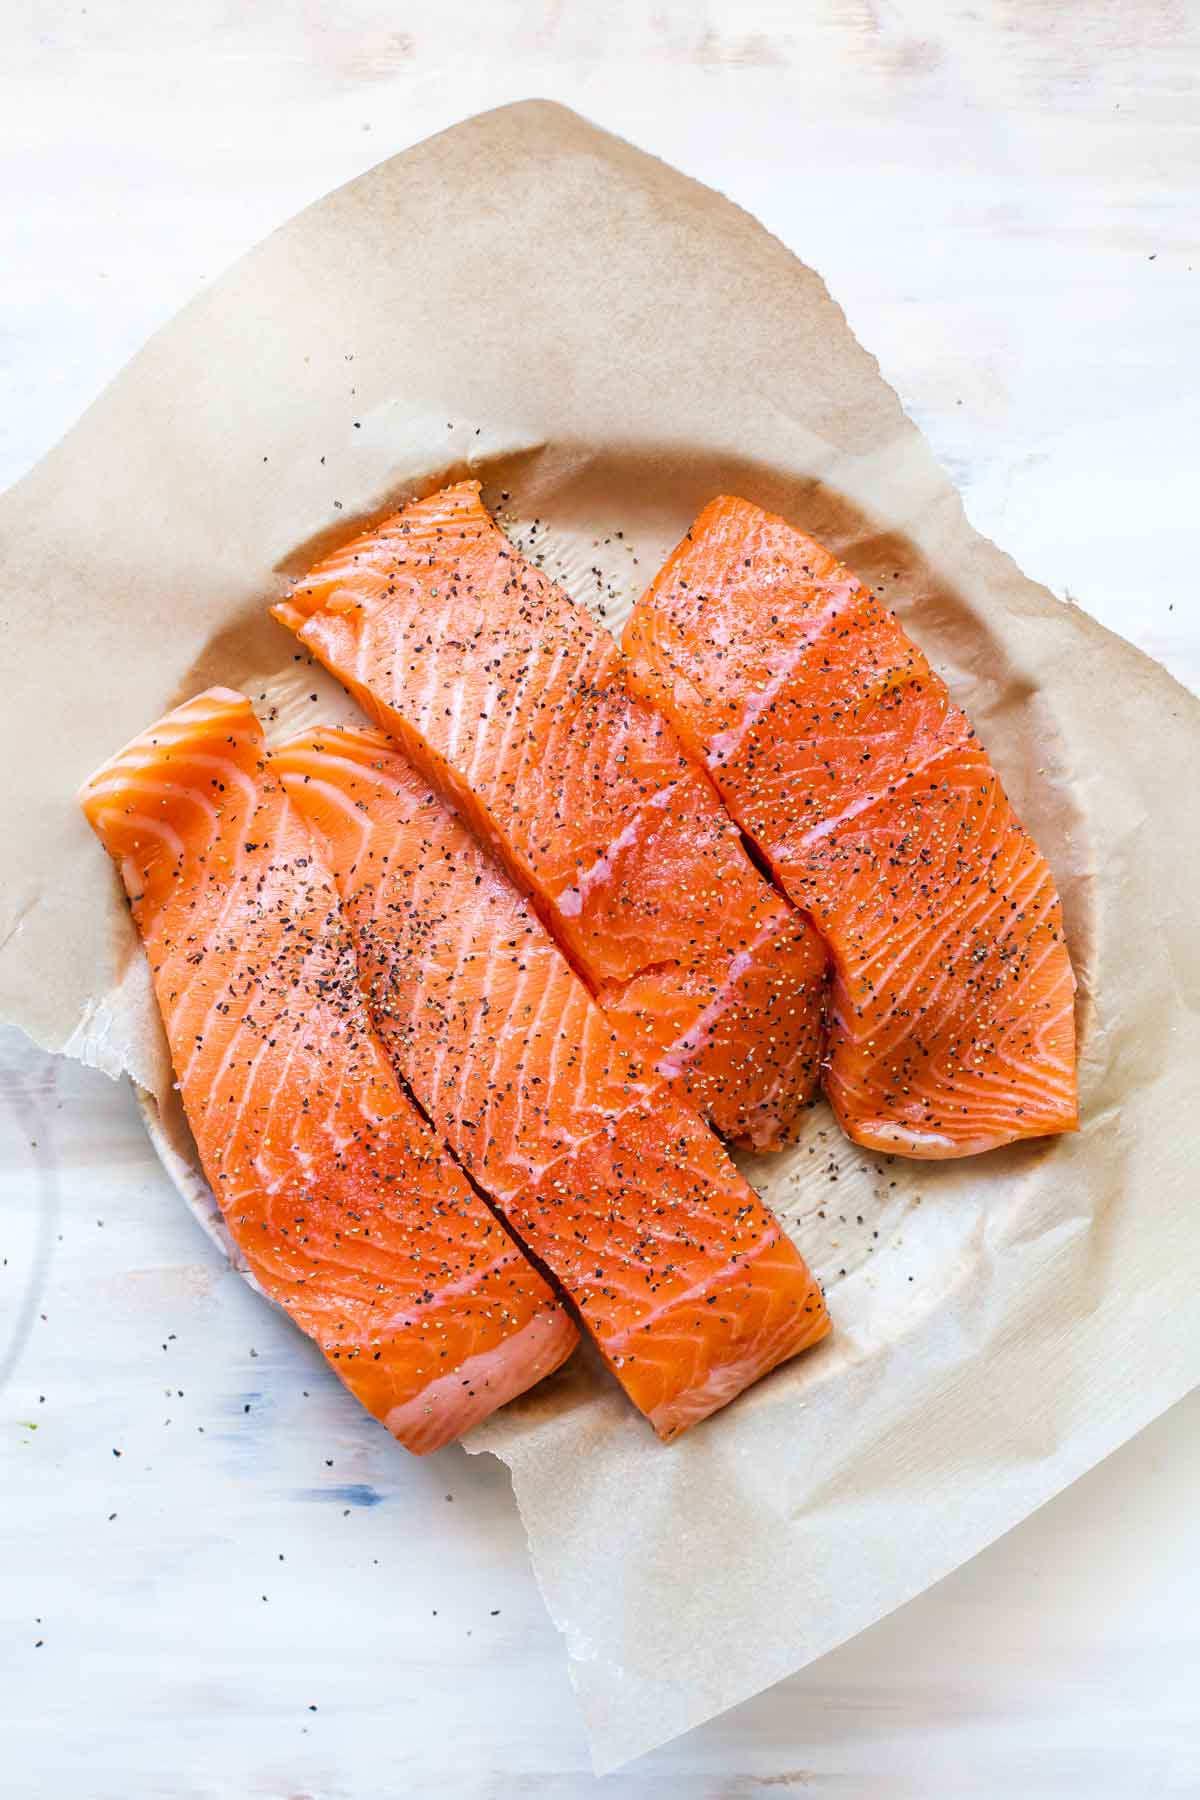 Raw salmon fillets on a plate seasoned with salt and pepper